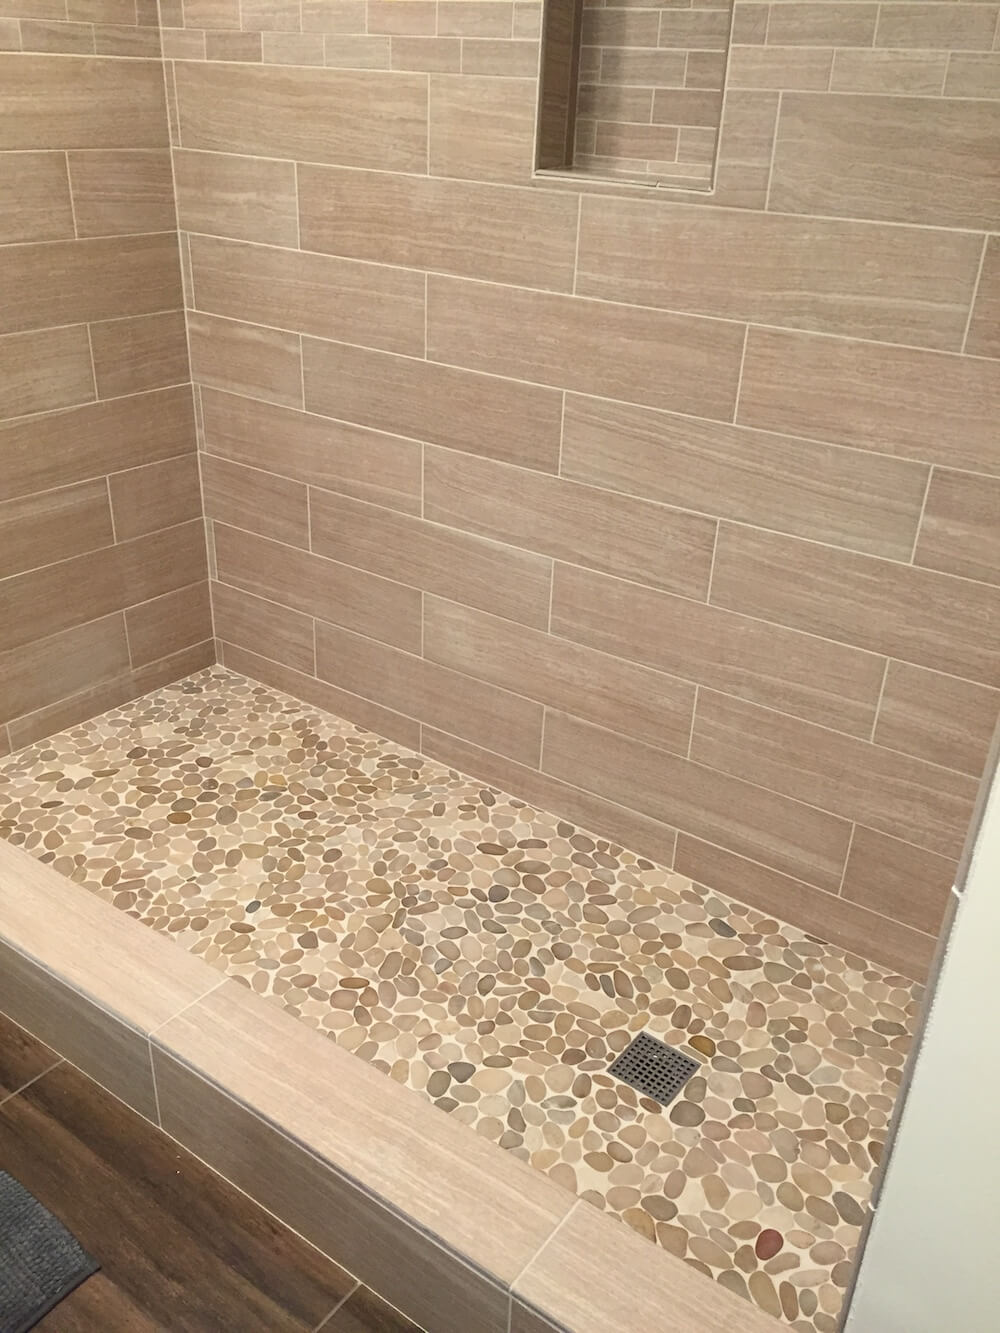 2019 Cost To Tile A Shower How Much To Tile A Shower